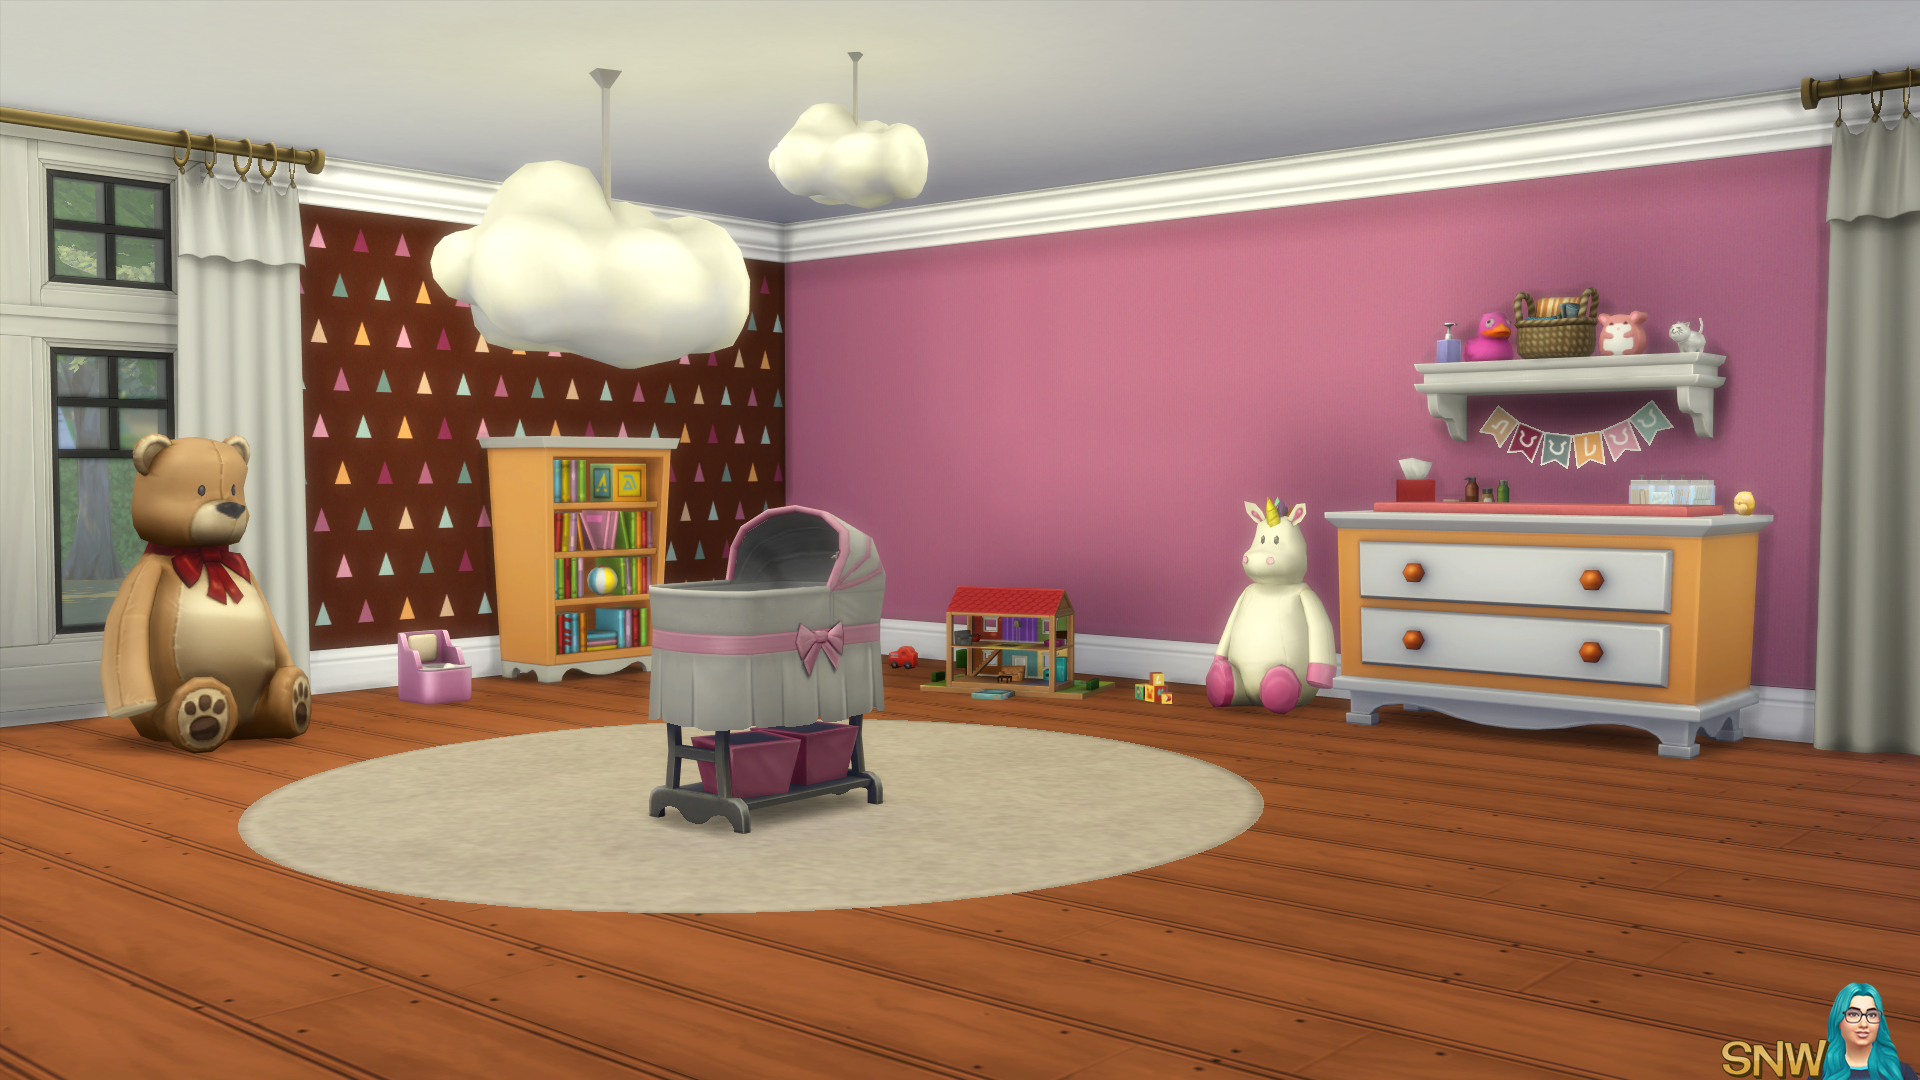 Nursery Walls Set #7 - Basics + Triangles